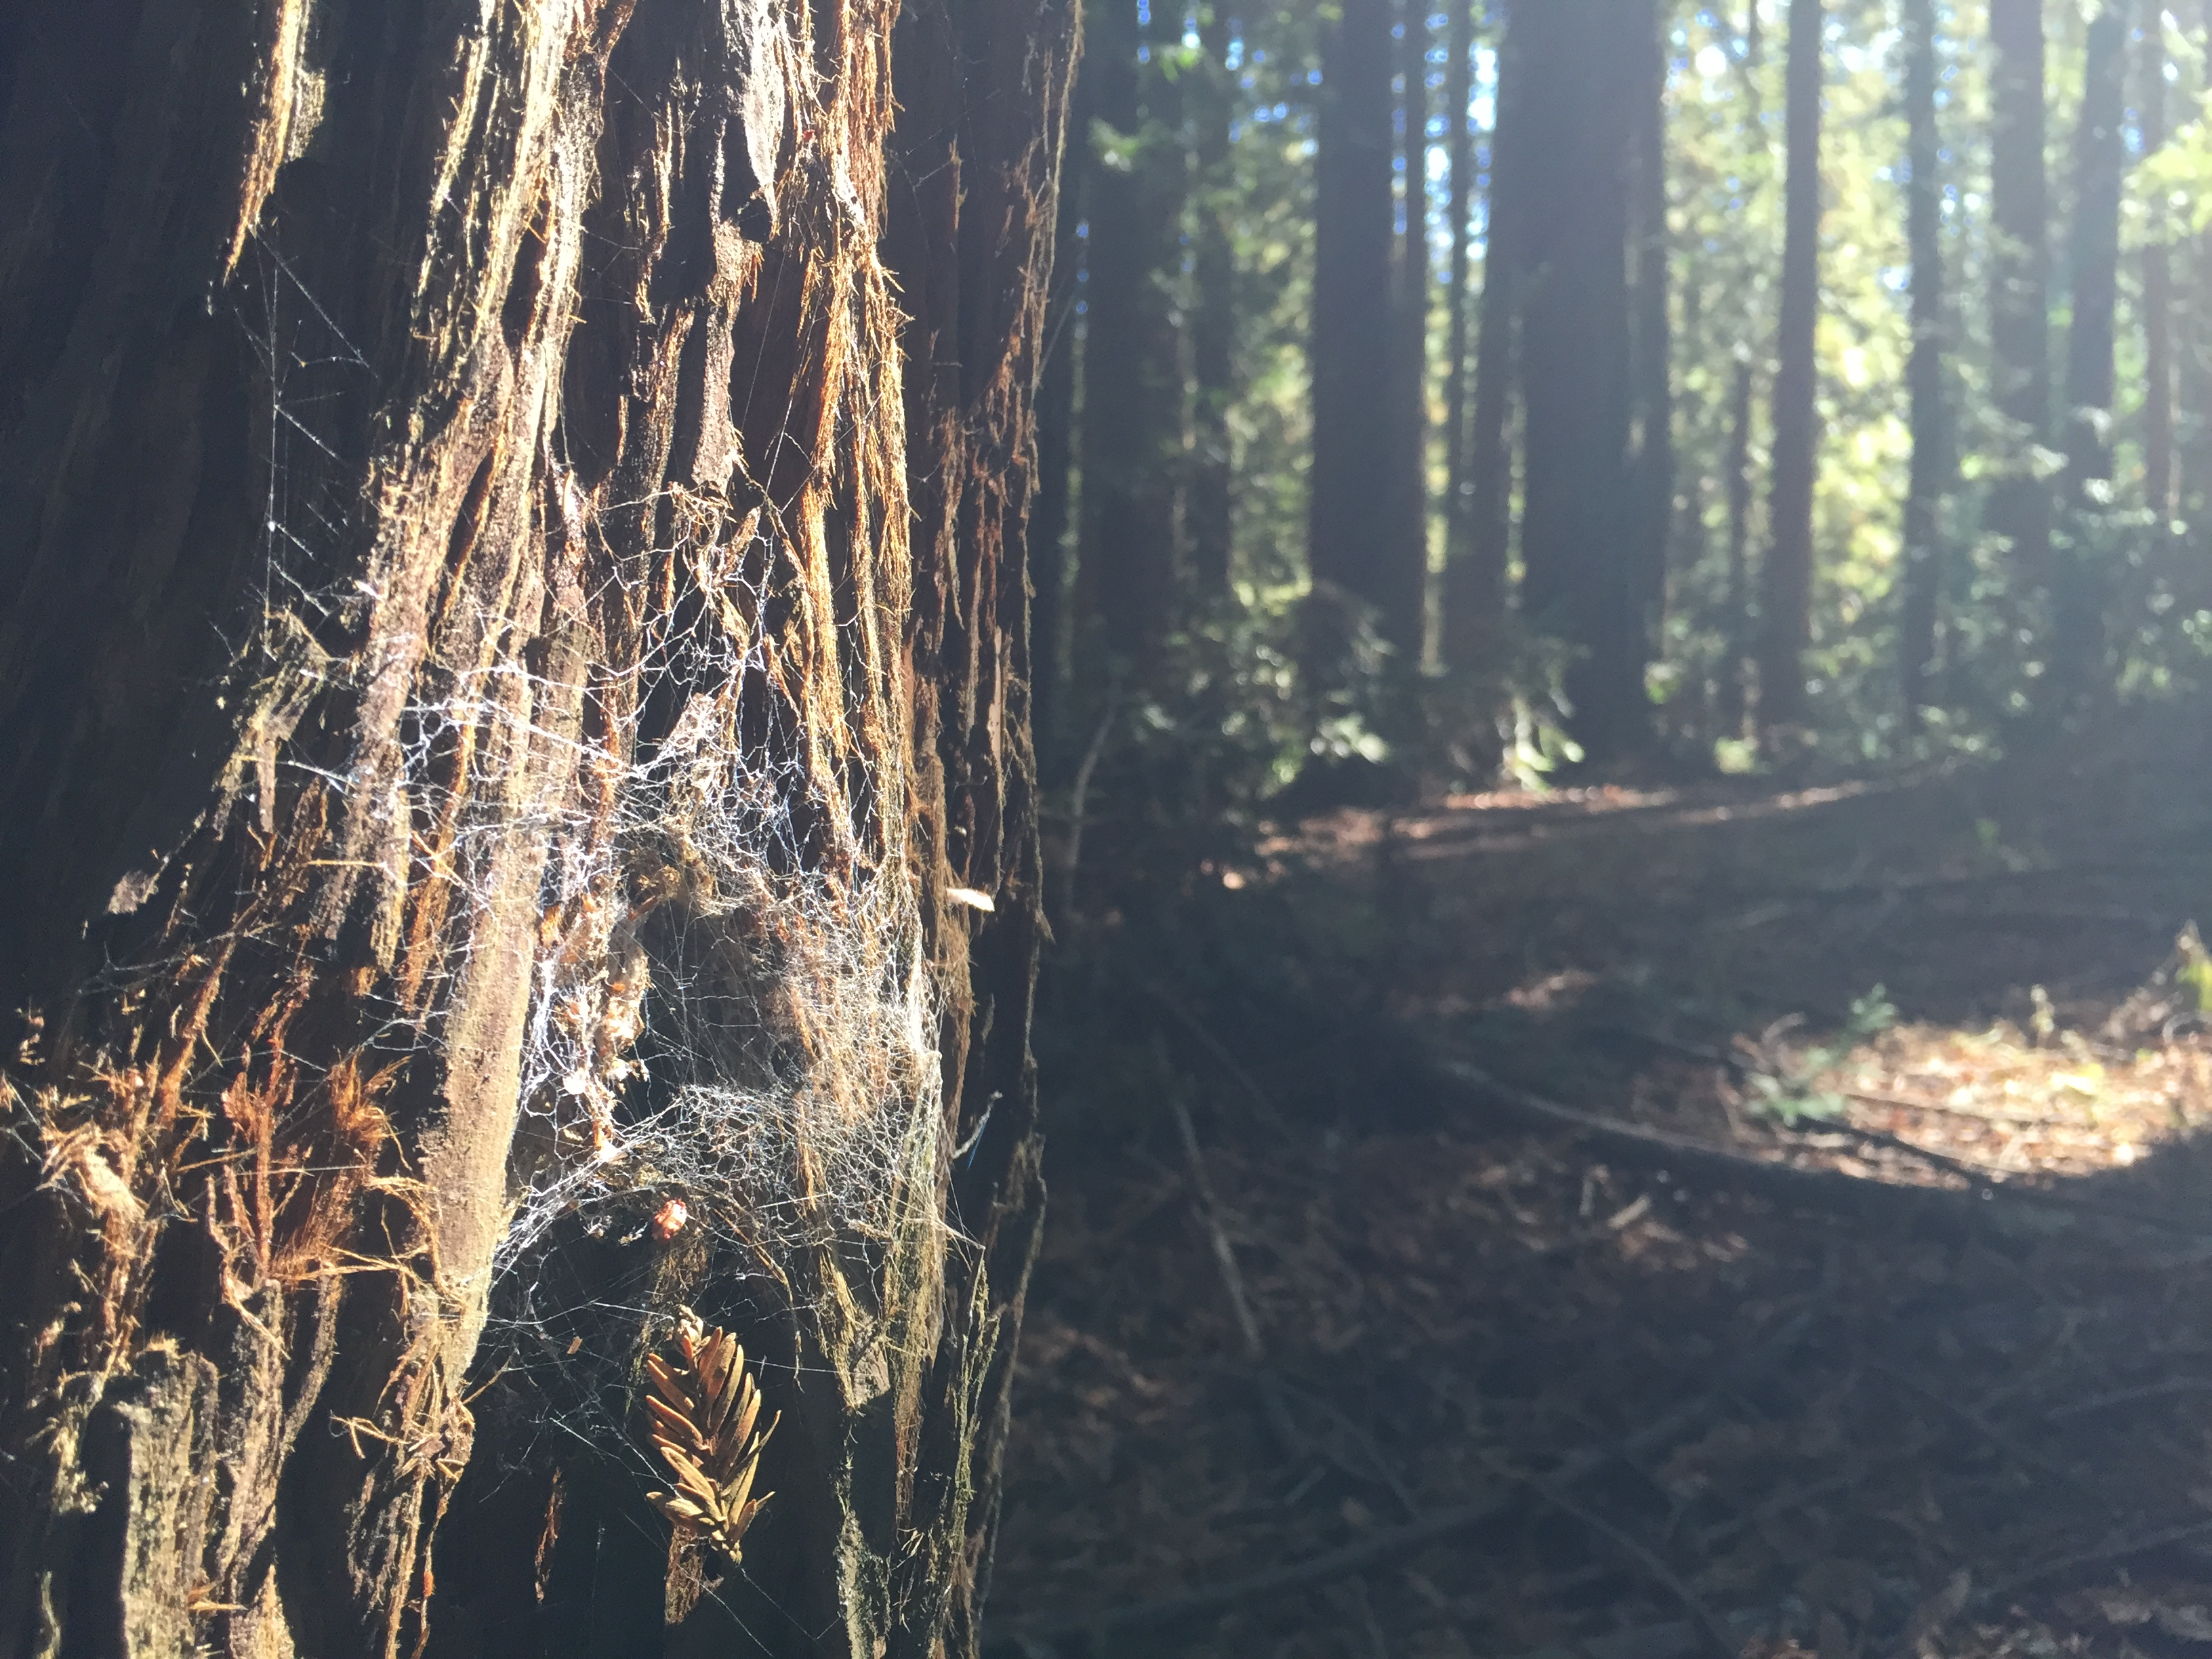 tree trunk and spider web